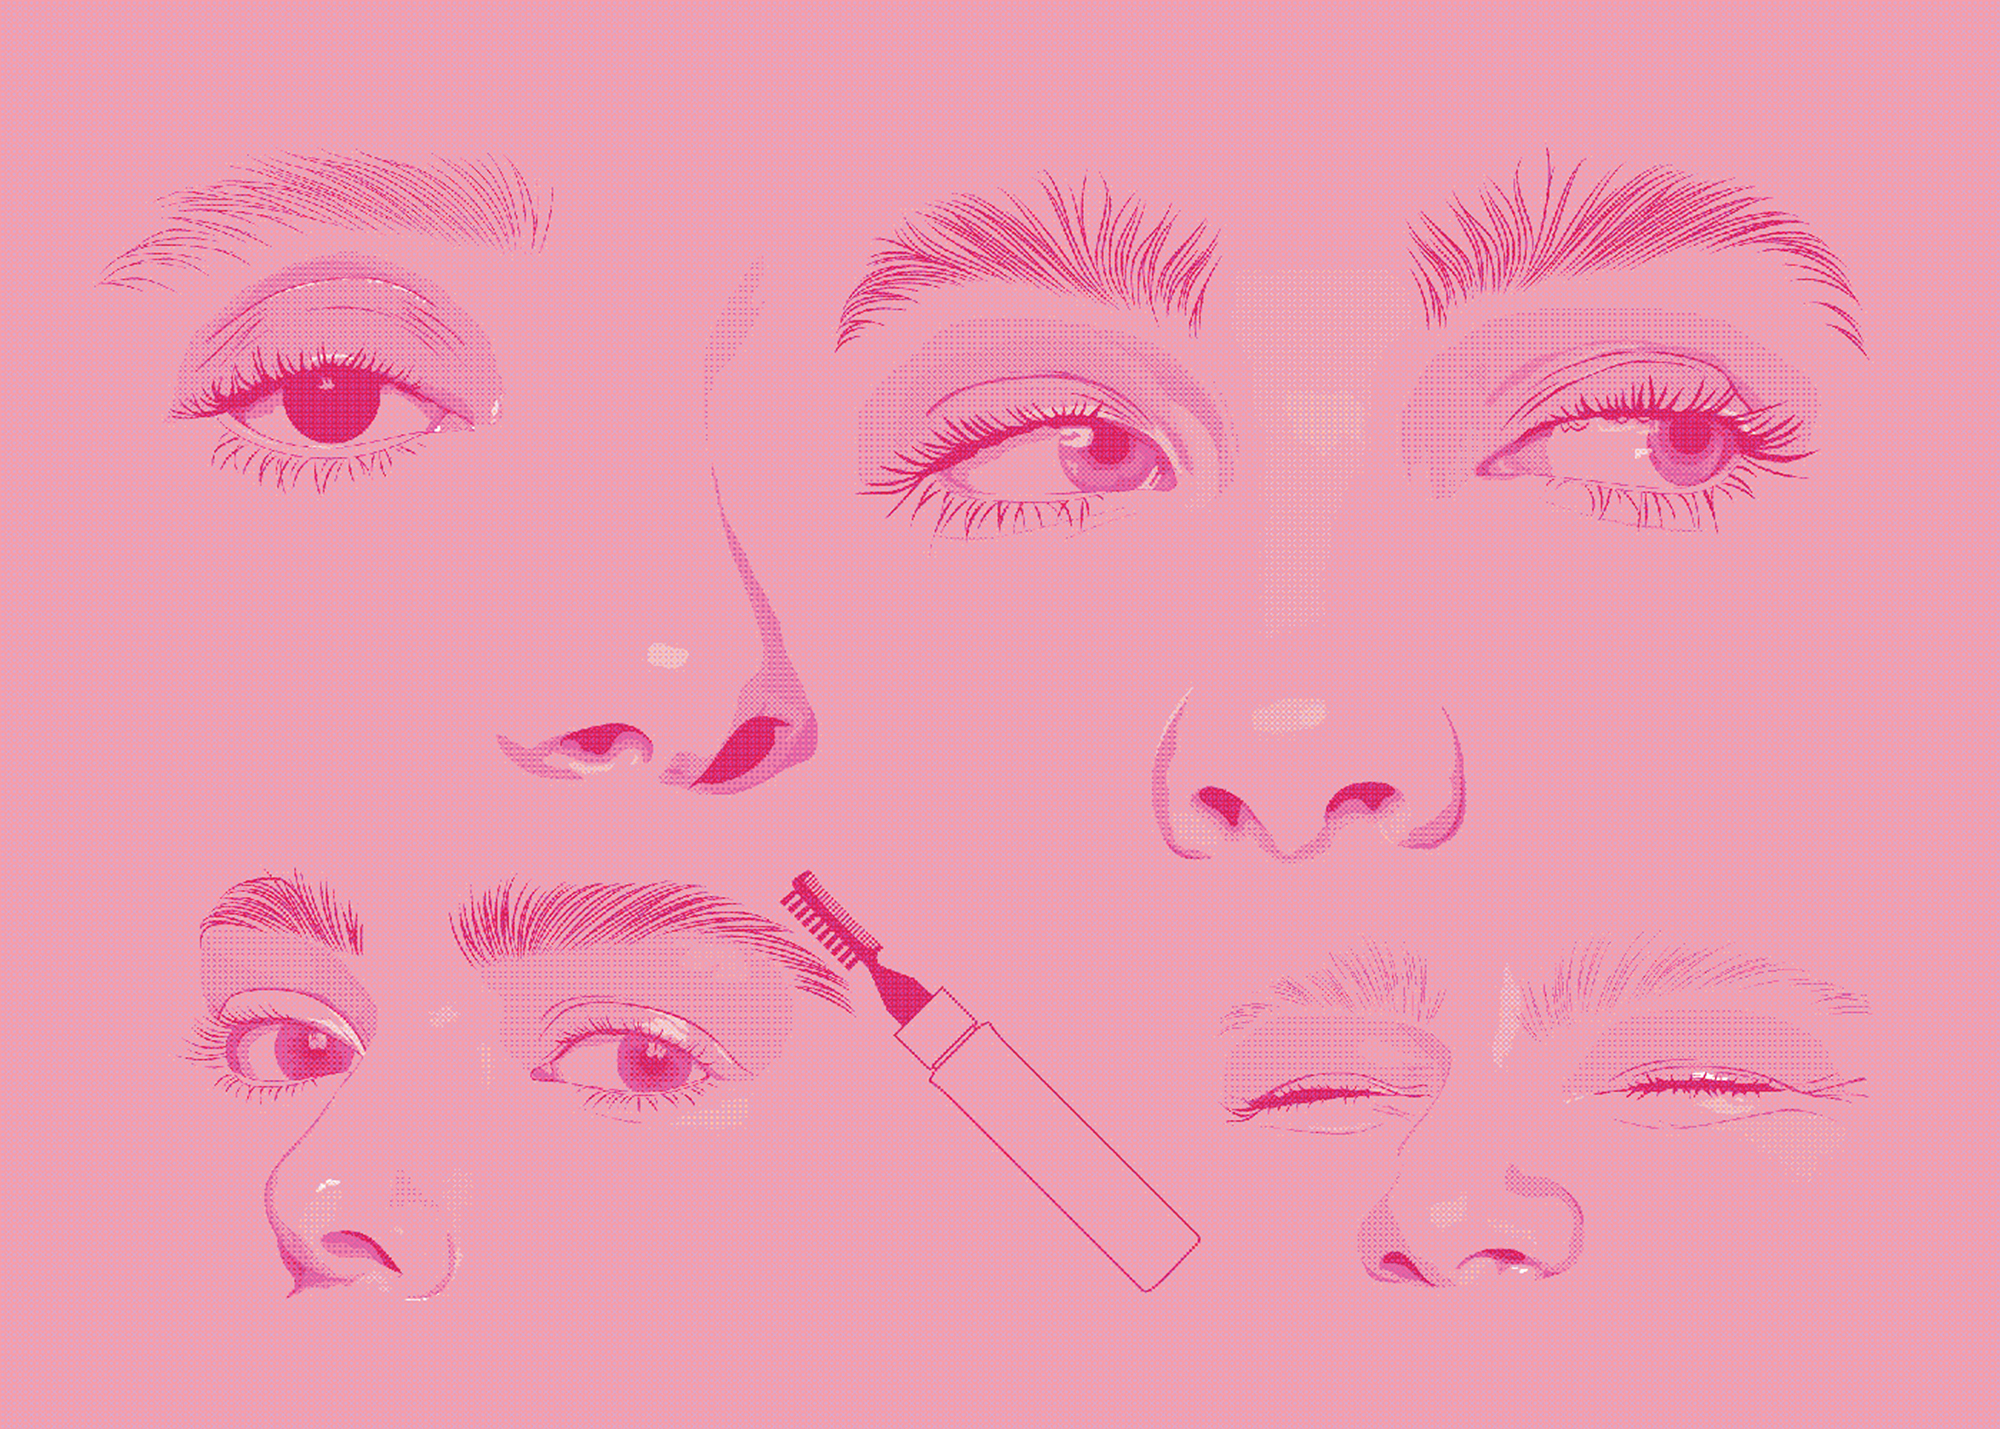 Butcher-Yazmin_WindowsGIF_TEST_nyt_eyebrows